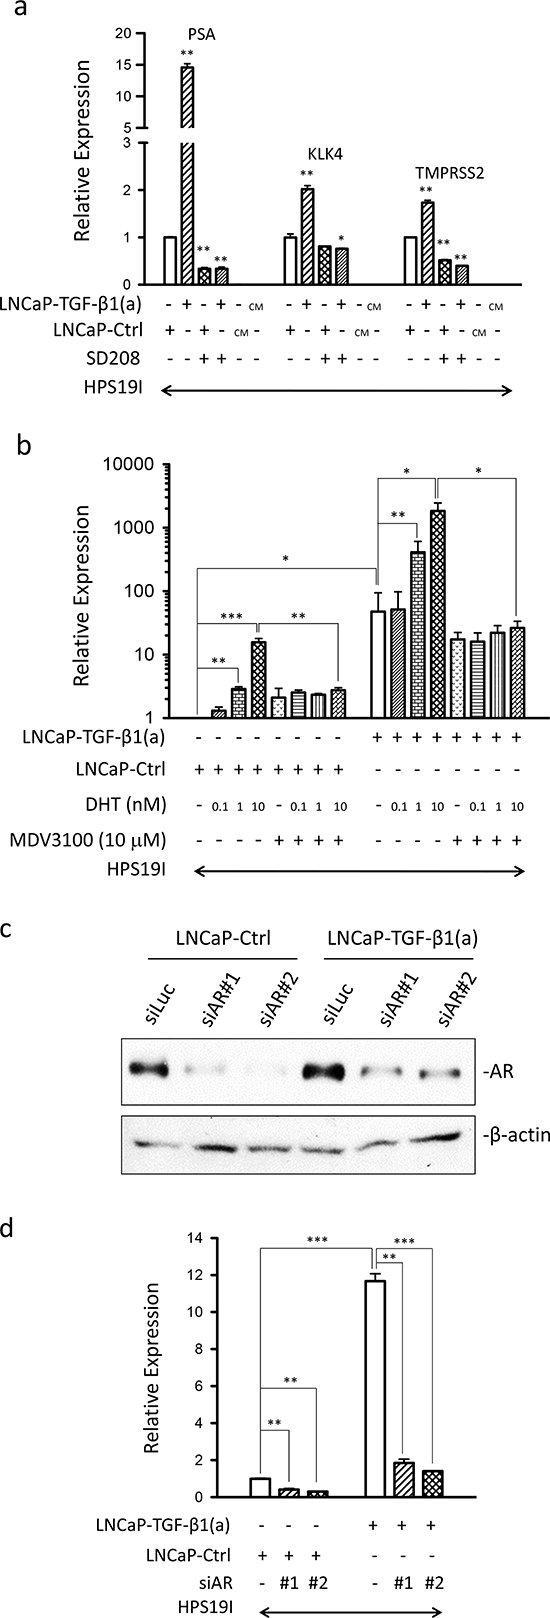 Prostate stromal TGF-β signaling induces AR activation in the co-cultured LNCaP cells.